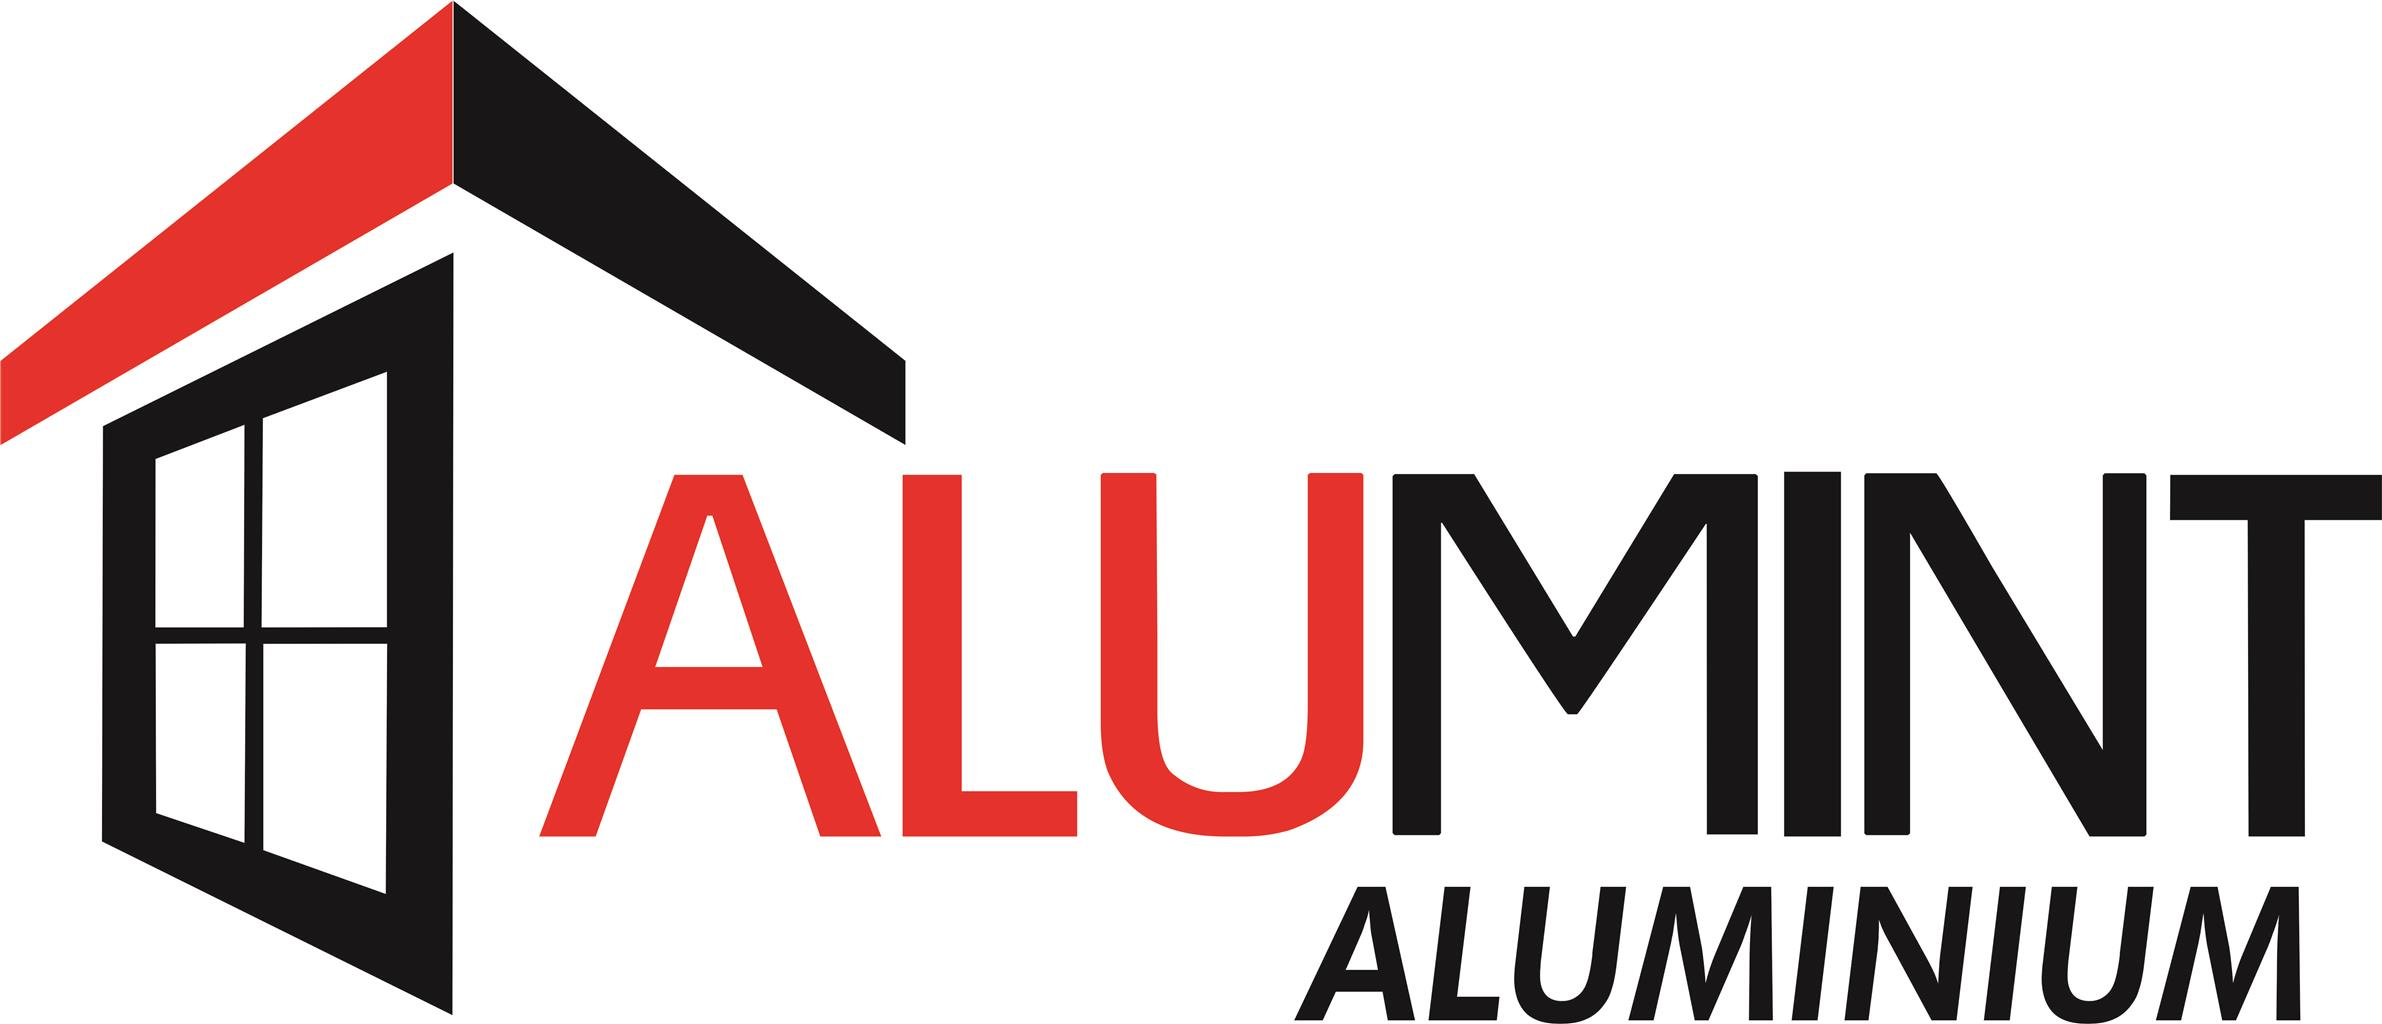 Find Alumint's adverts listed on Junk Mail